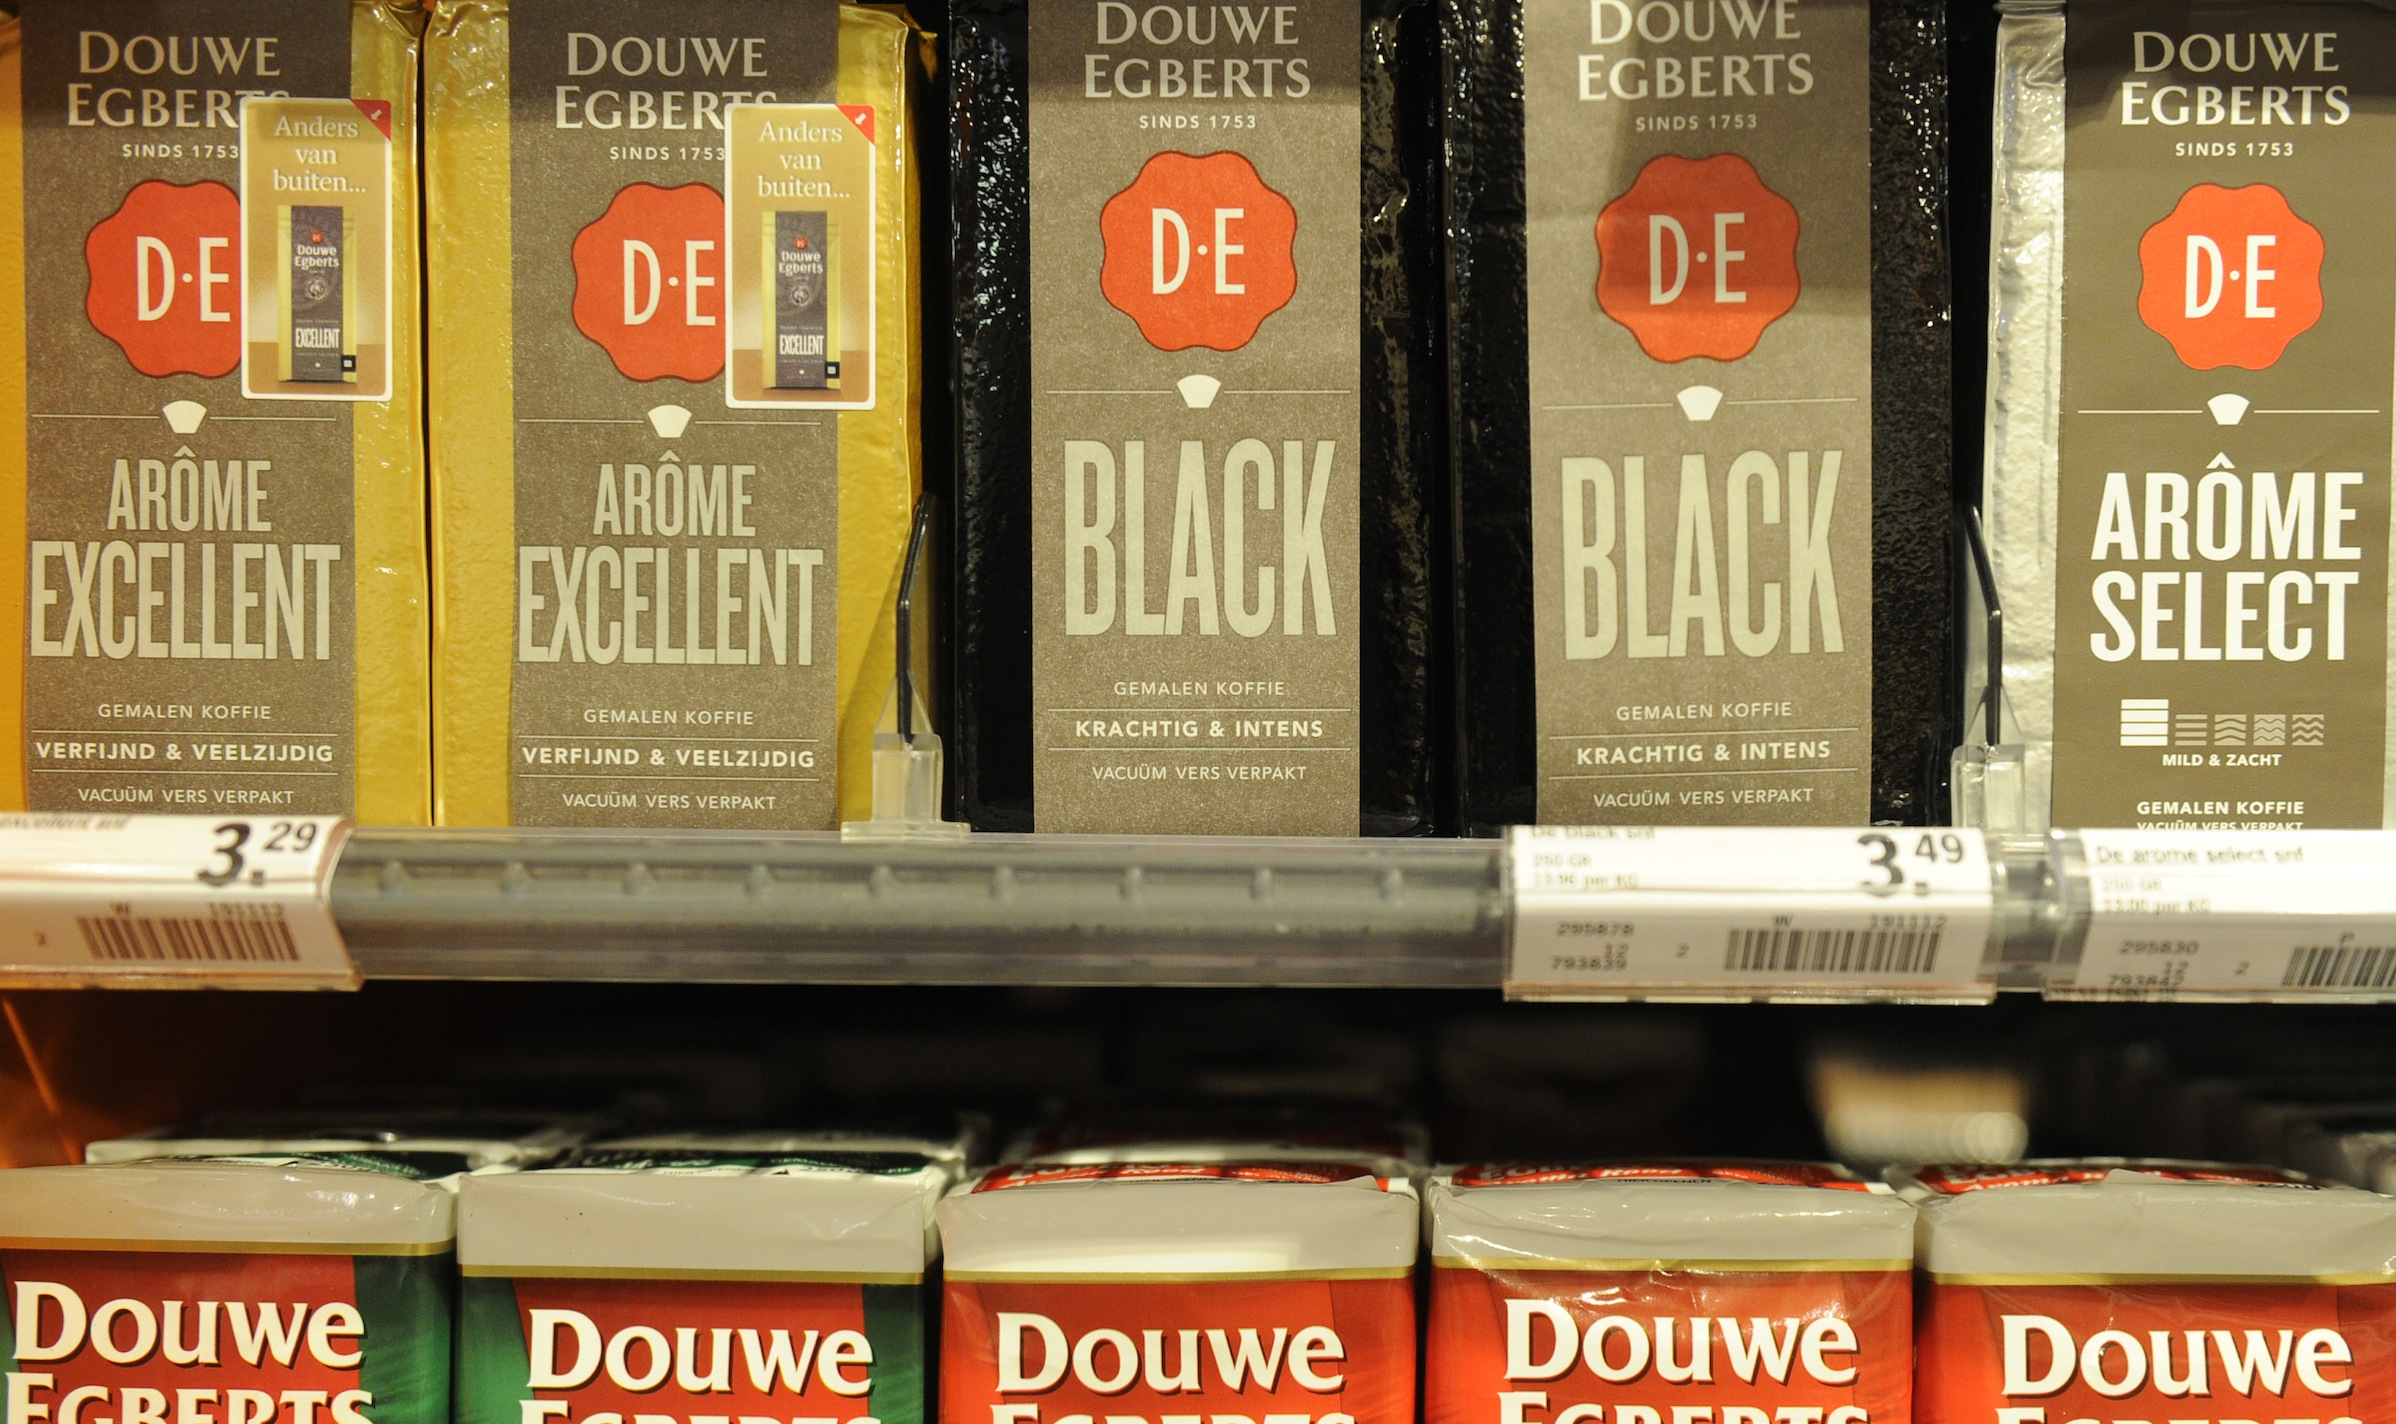 Packets of Douwe Egberts coffee are seen at a supermarket in Amsterdam April 12, 2013. German investor Joh A Benckiser (JAB) is to buy the owner of Douwe Egberts coffee in 7.5-billion-euro ($9.8 billion) deal to bolster its position in a hot drinks industry driven by innovation and emerging market growth. D.E Master Blenders 1753 the Dutch owner of Douwe Egberts coffee and Pickwick tea, said on Friday it had reached conditional agreement on a 12.50 euros per share cash takeover offer from a group of investors led by JAB.  REUTERS/Toussaint Kluiters/United Photos  (NETHERLANDS - Tags: BUSINESS) - RTXYIOV